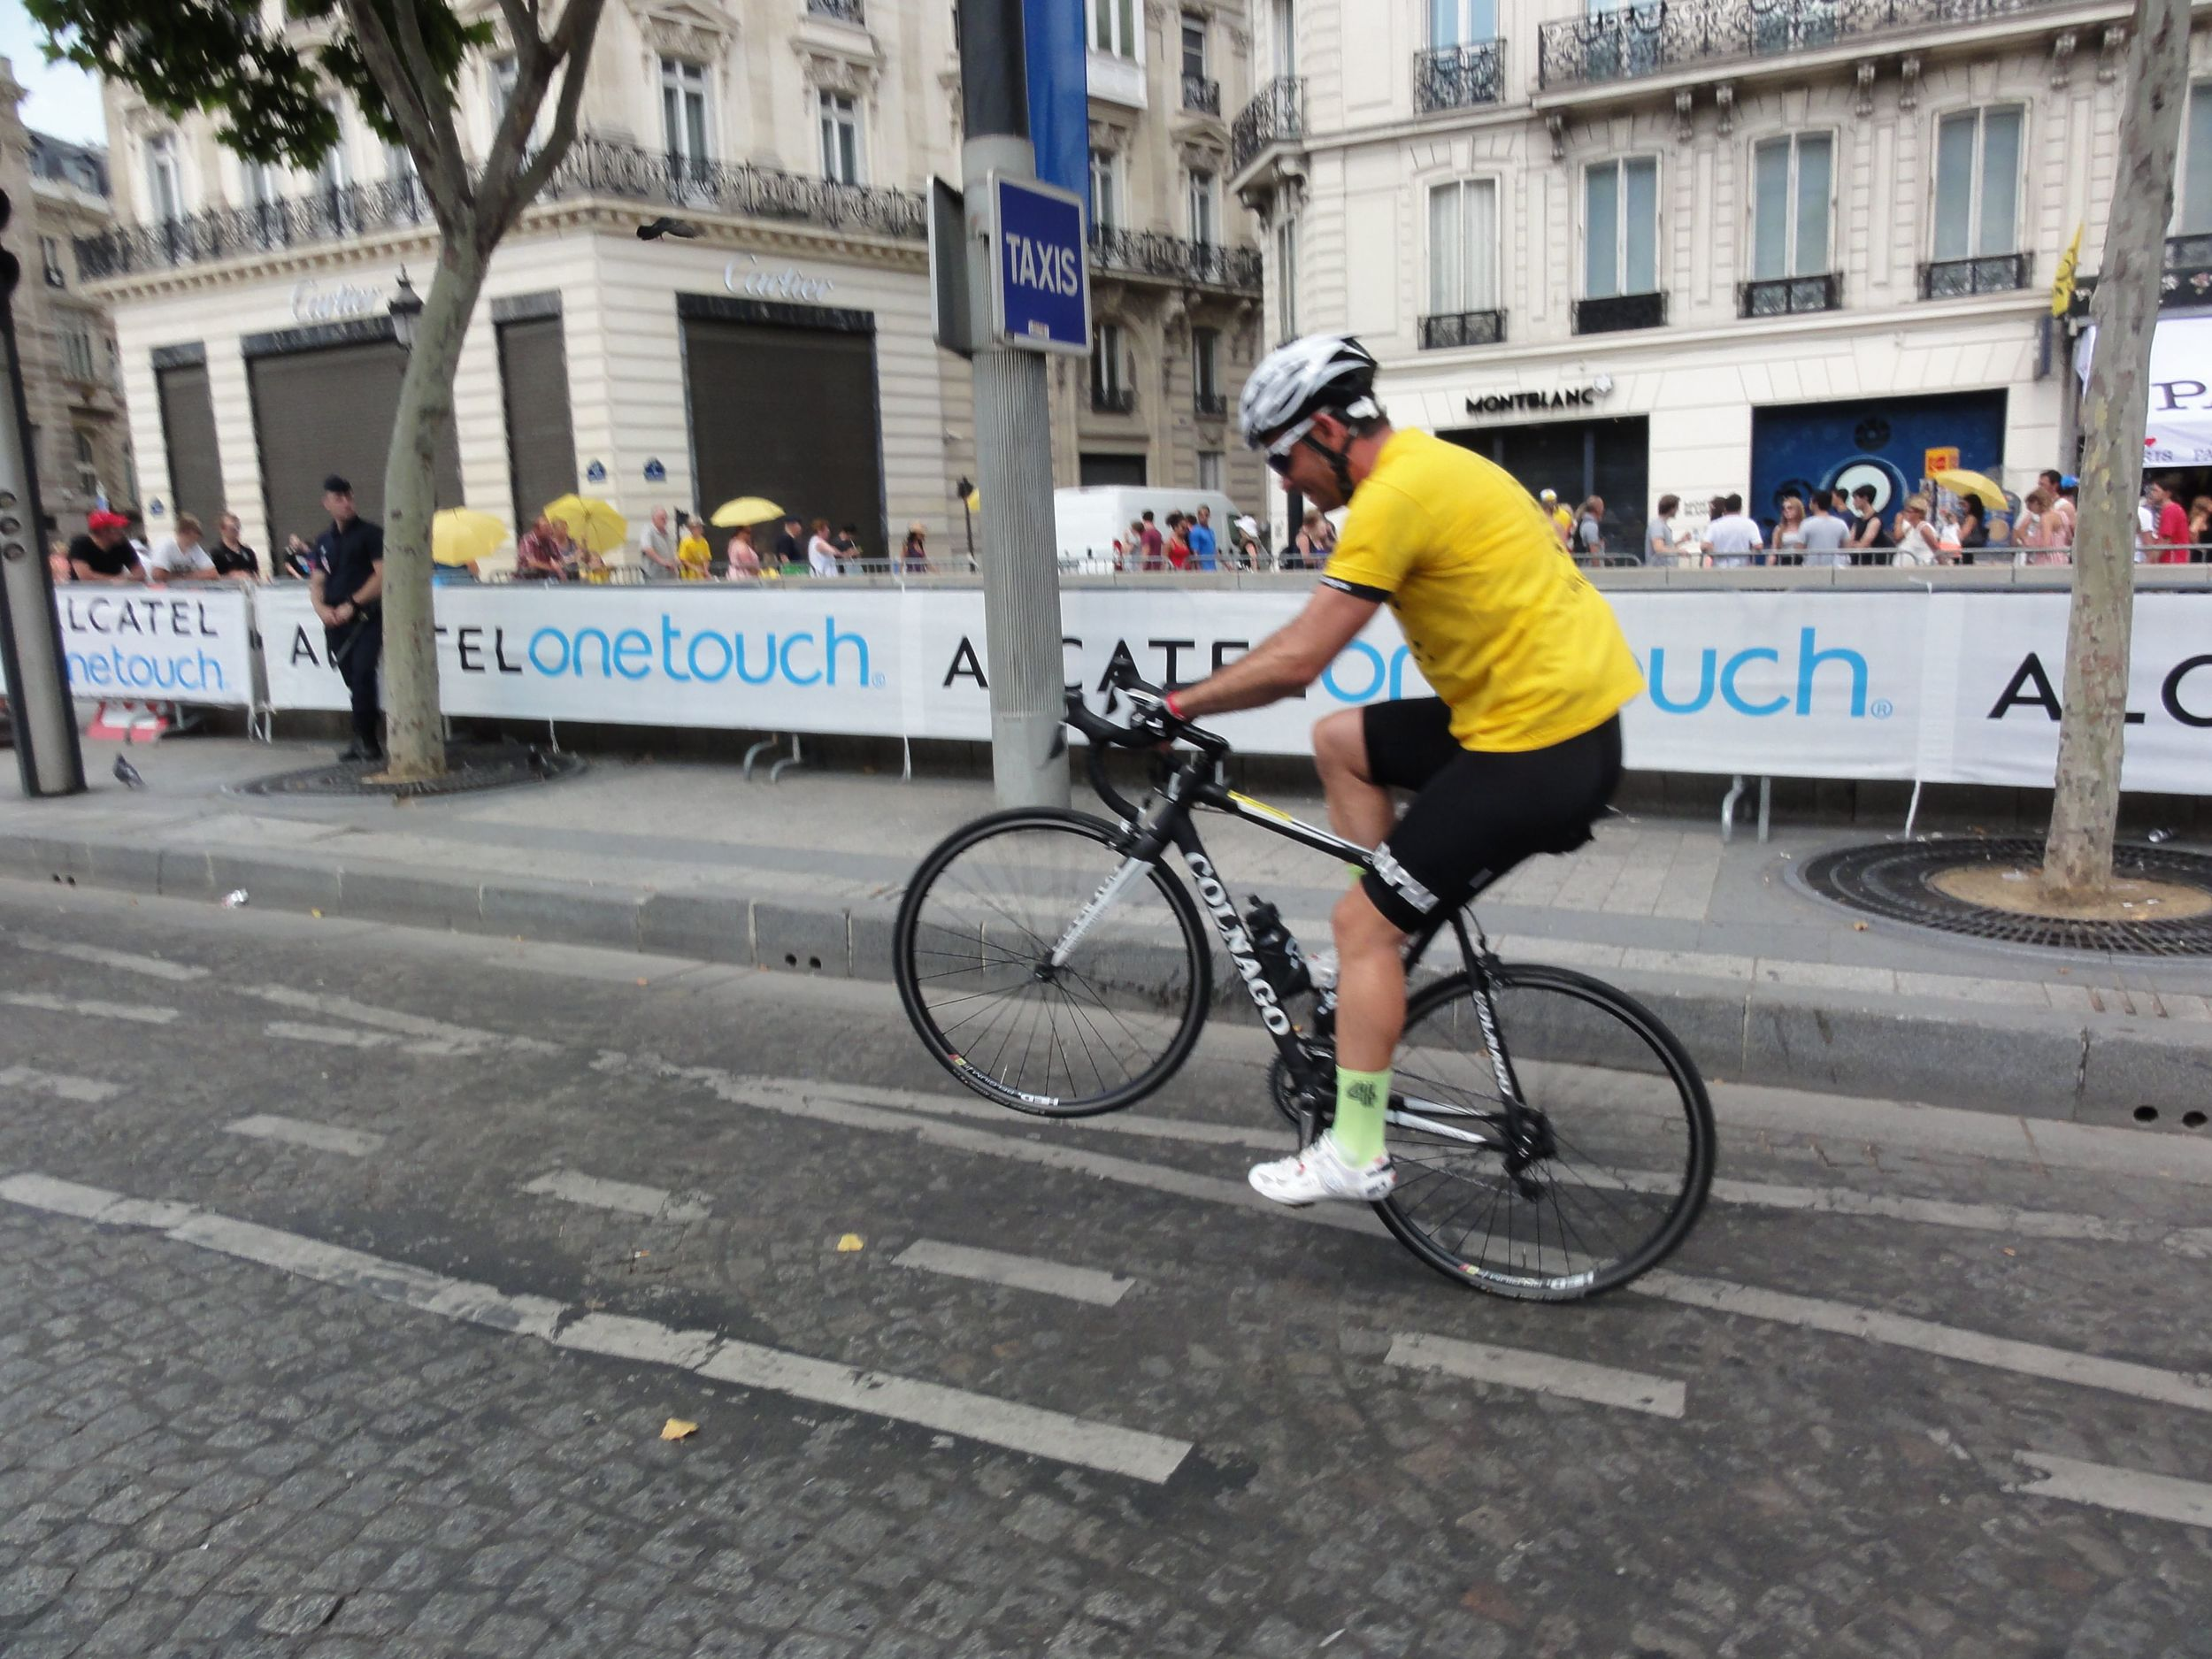 I had my Sagan moment on the Champs-Elysees and popped a wheelie while I had the chance!